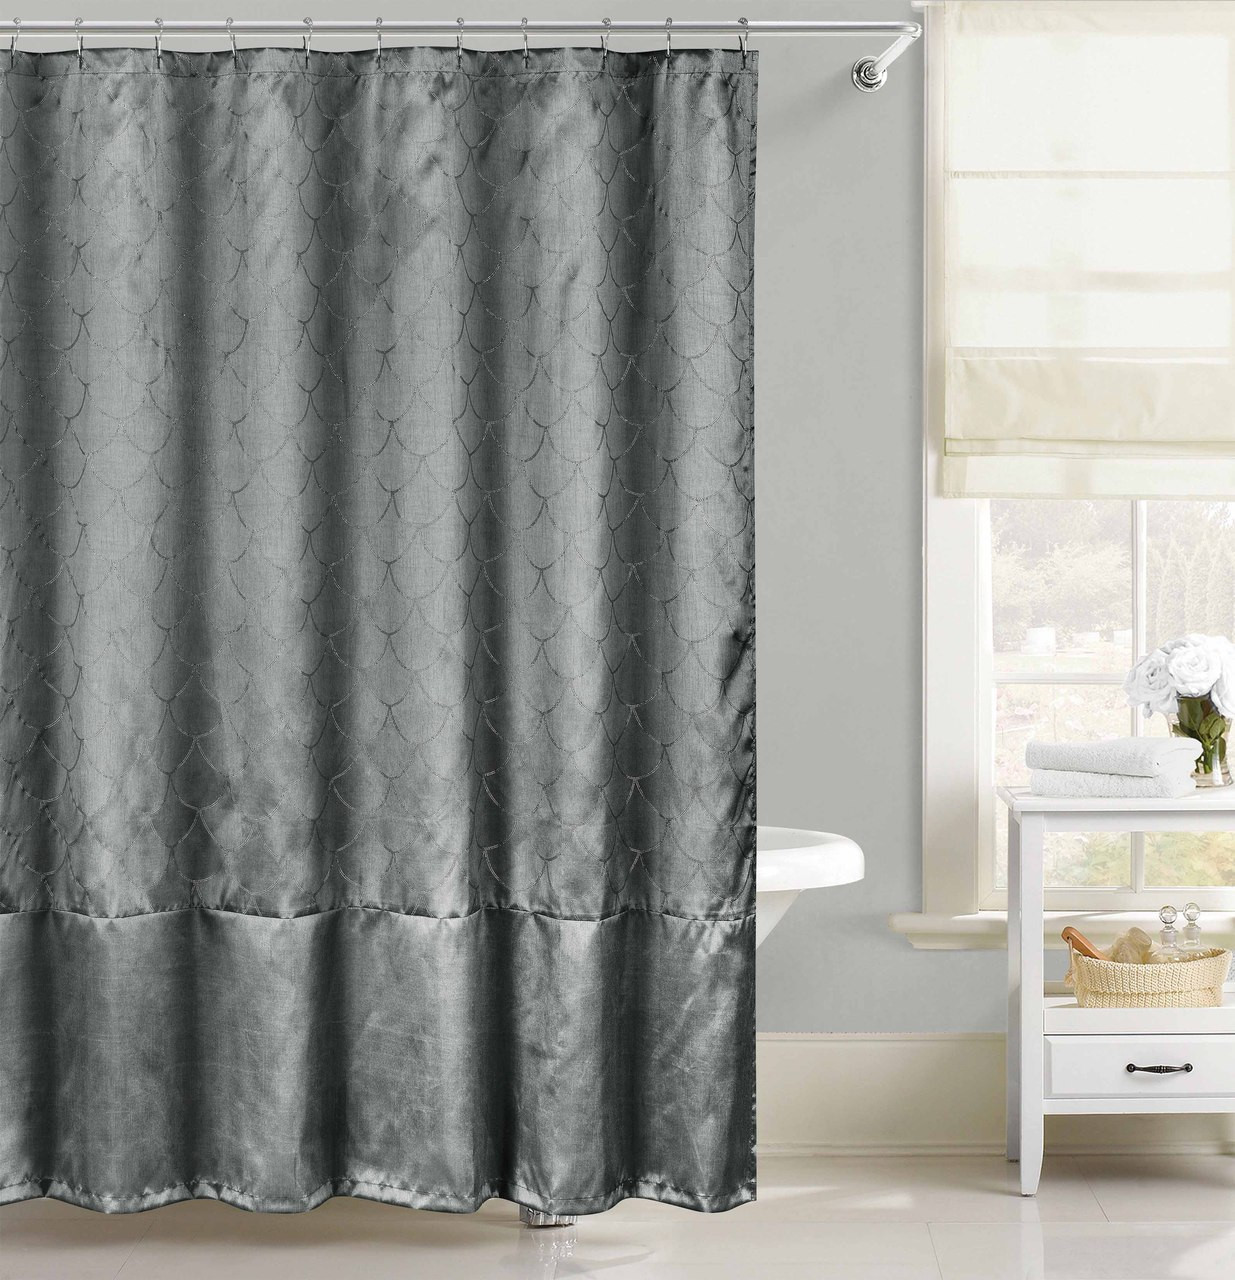 Gray Faux Silk Fabric Shower Curtain Metallic Silver Raised Pin Dot Fishscale Design